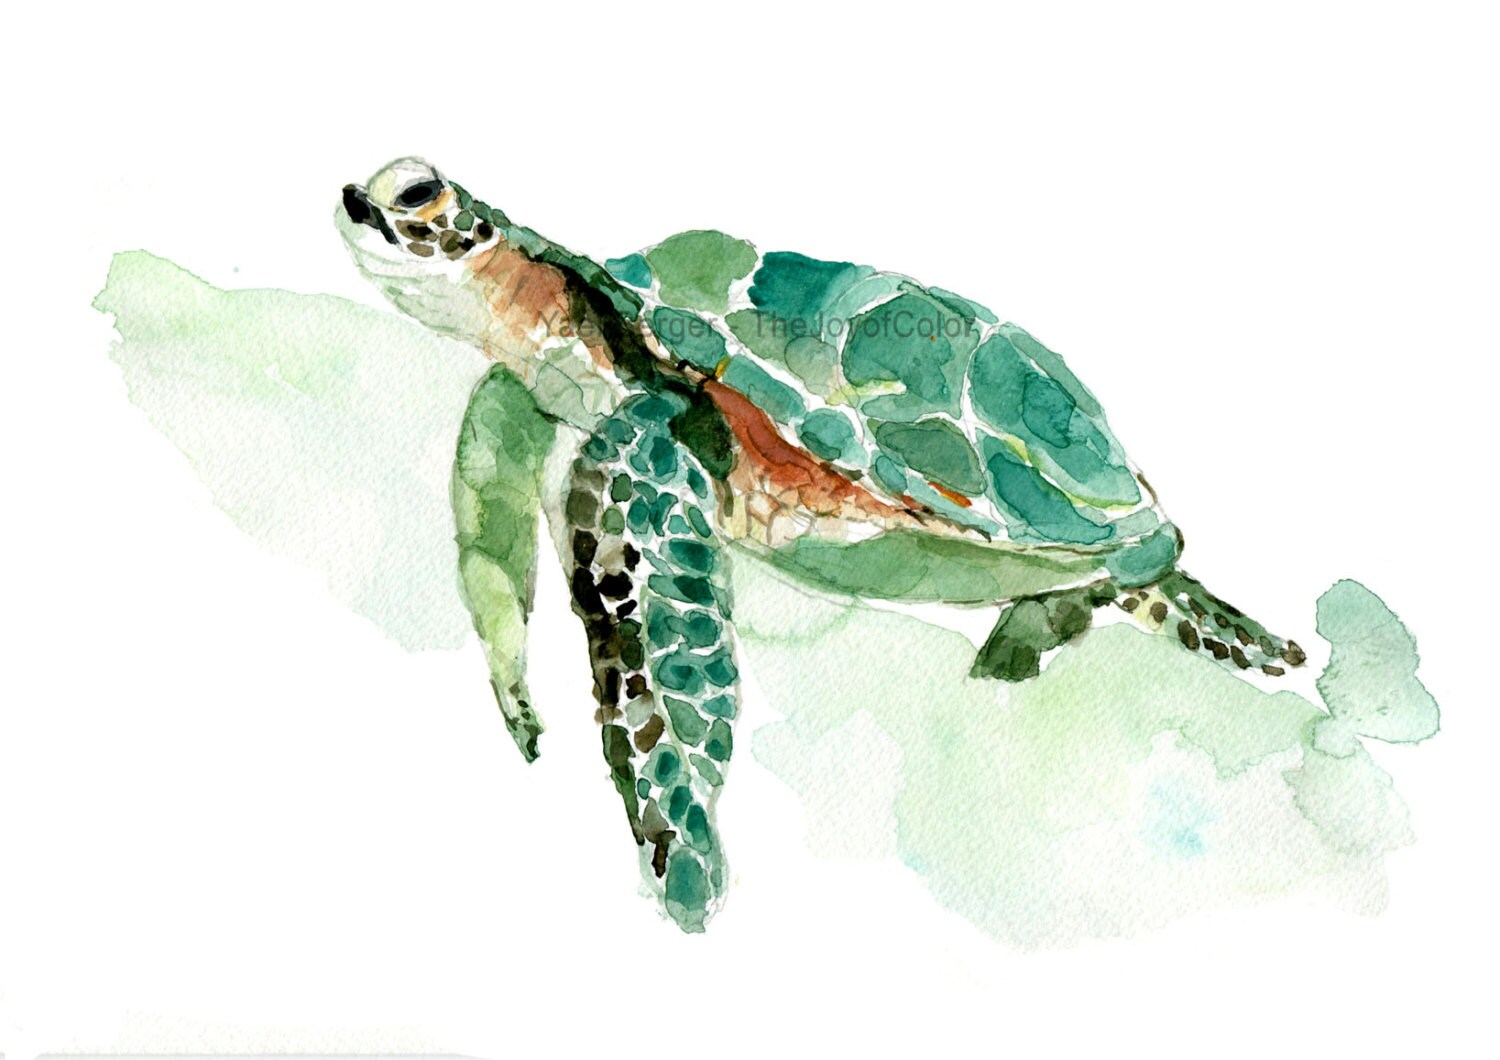 Juicy image intended for sea turtle printable